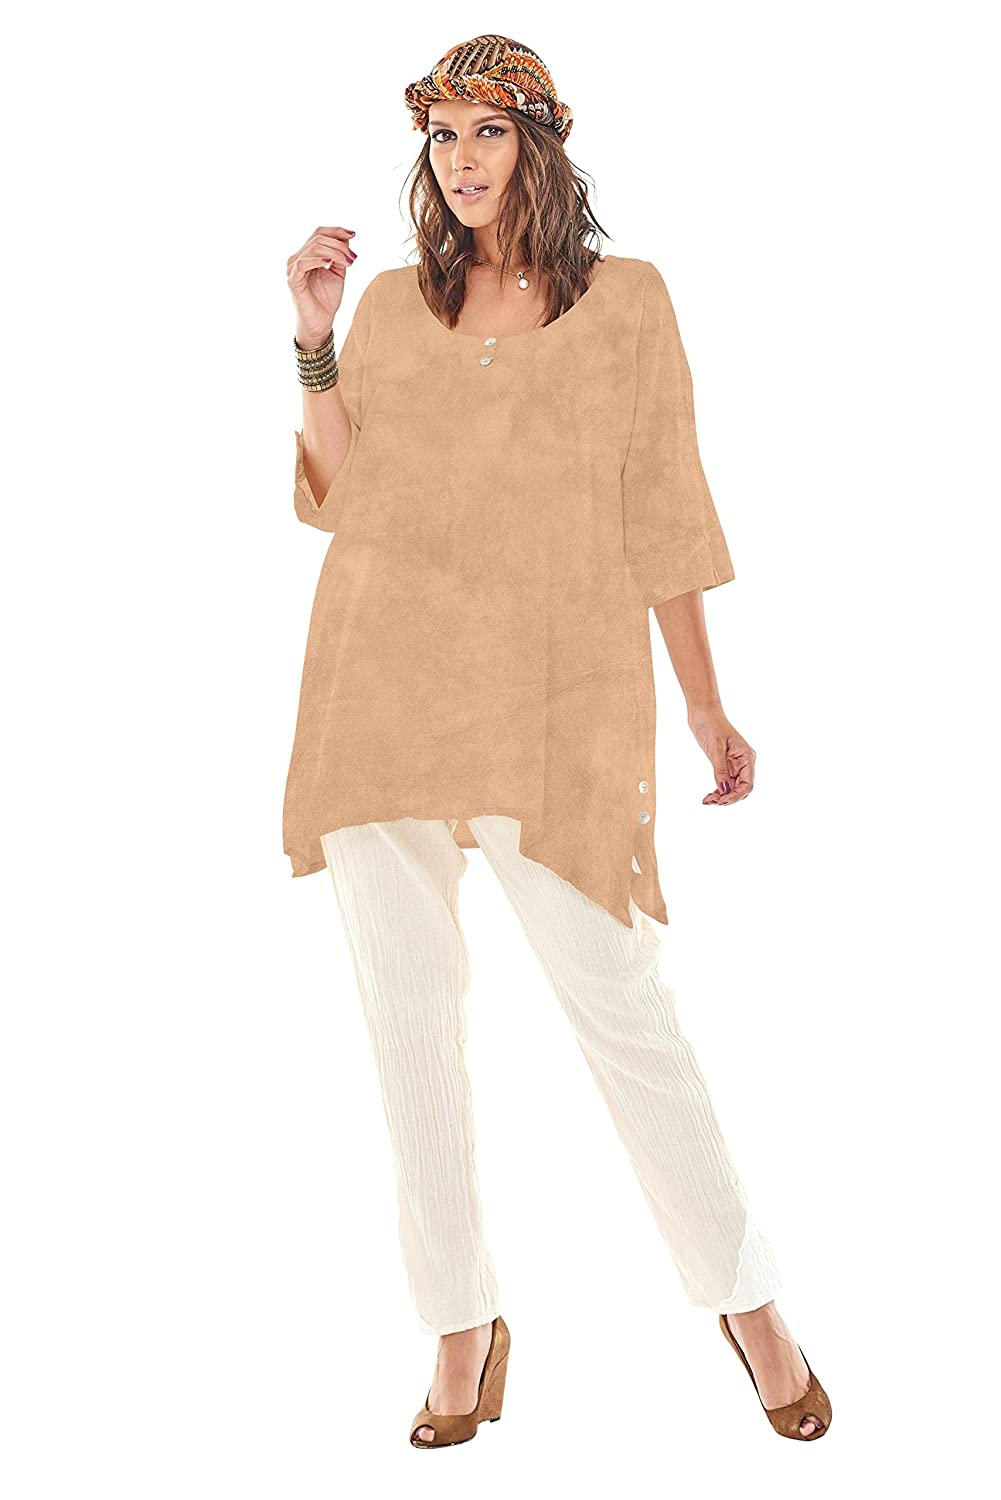 Oh My Gauze Womens Marcy Blouse